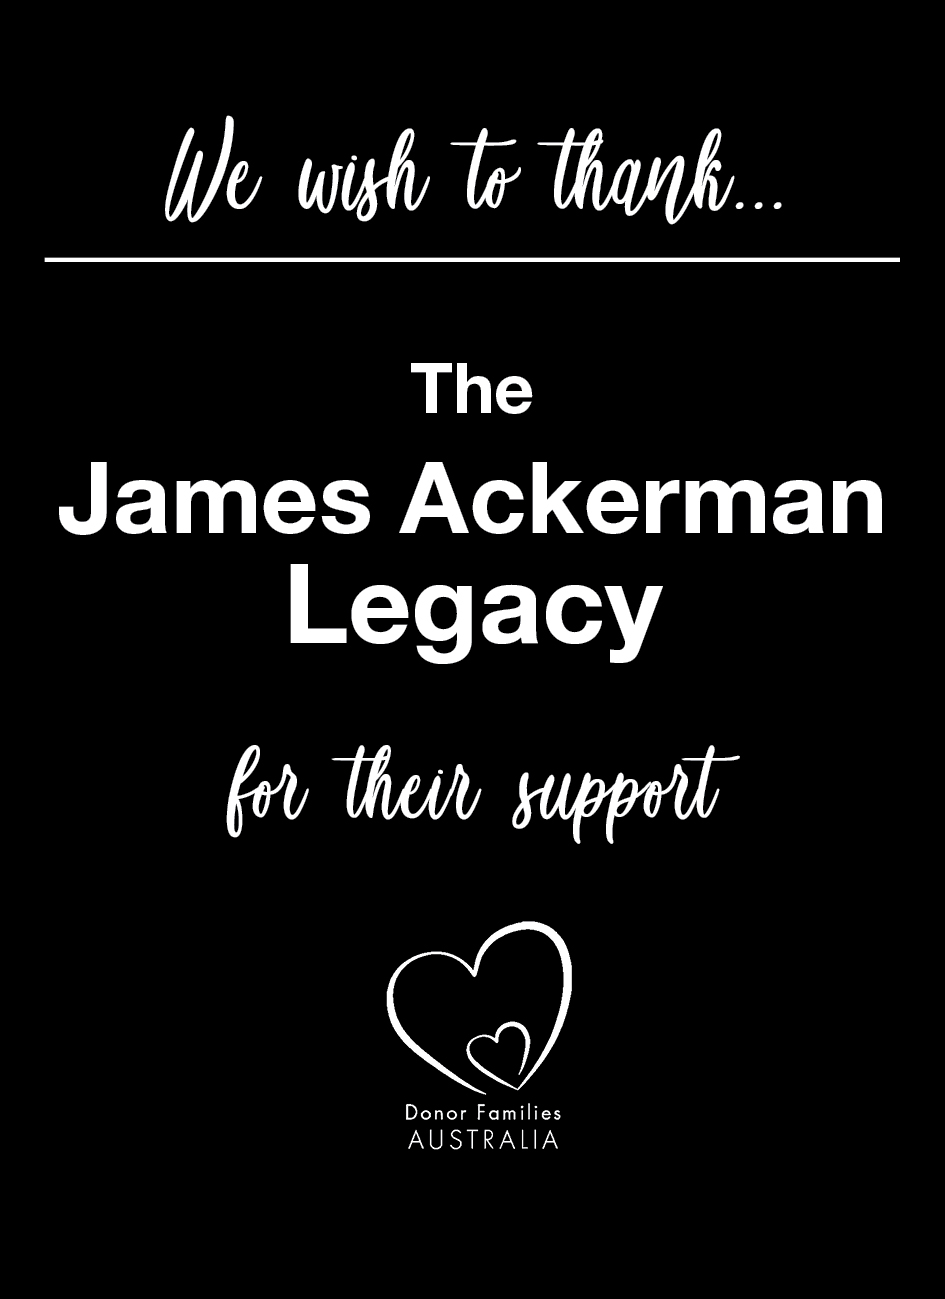 we wish to thank The James Ackerman Lega